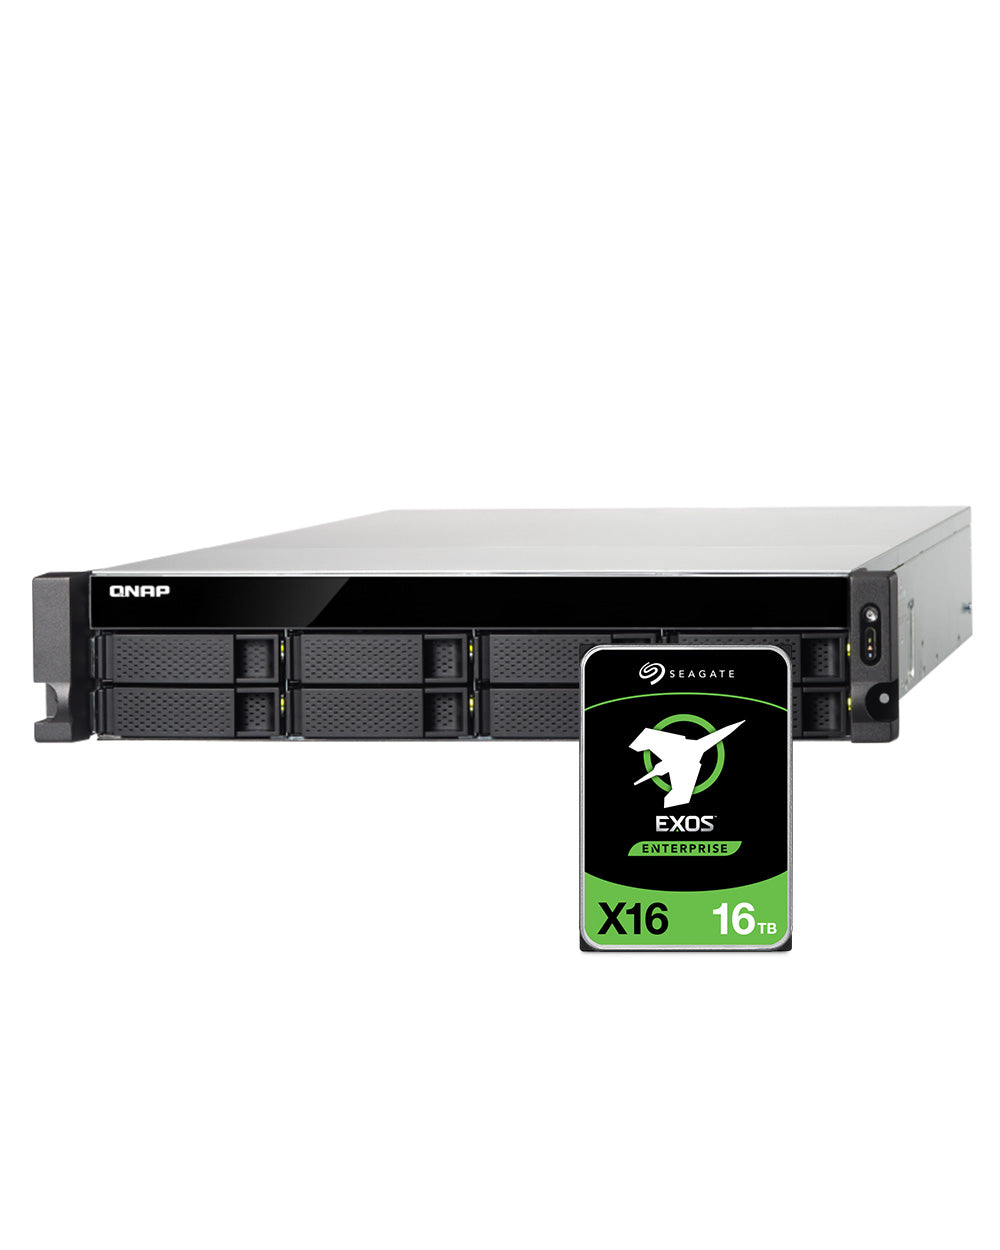 QNAP TS-883XU-RP-E2124-8G 64TB with 16TB Seagate Exos Drives